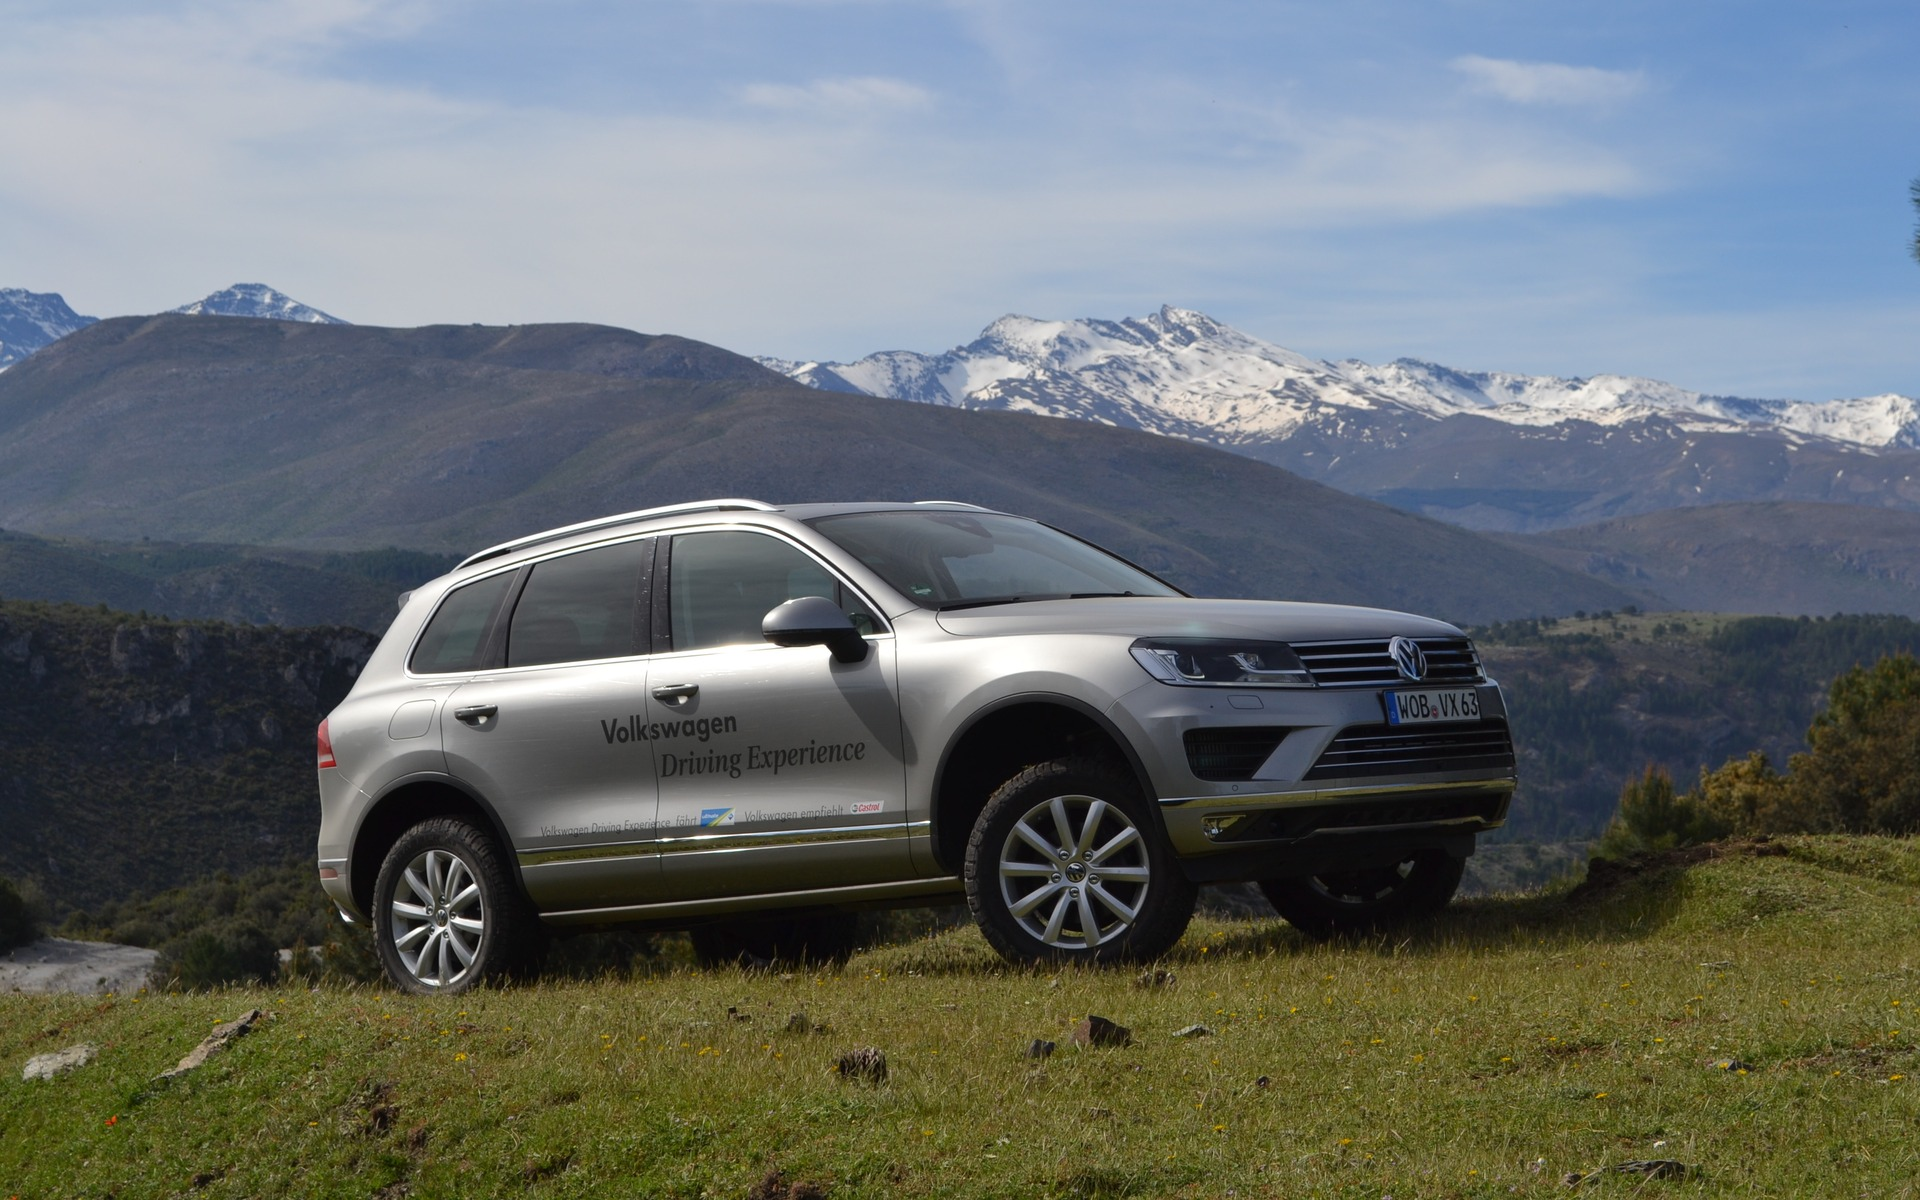 2015 volkswagen touareg crossing the sierra nevada the car guide rh guideautoweb com 2017 Volkswagen Touareg Volkswagen Touareg 2016